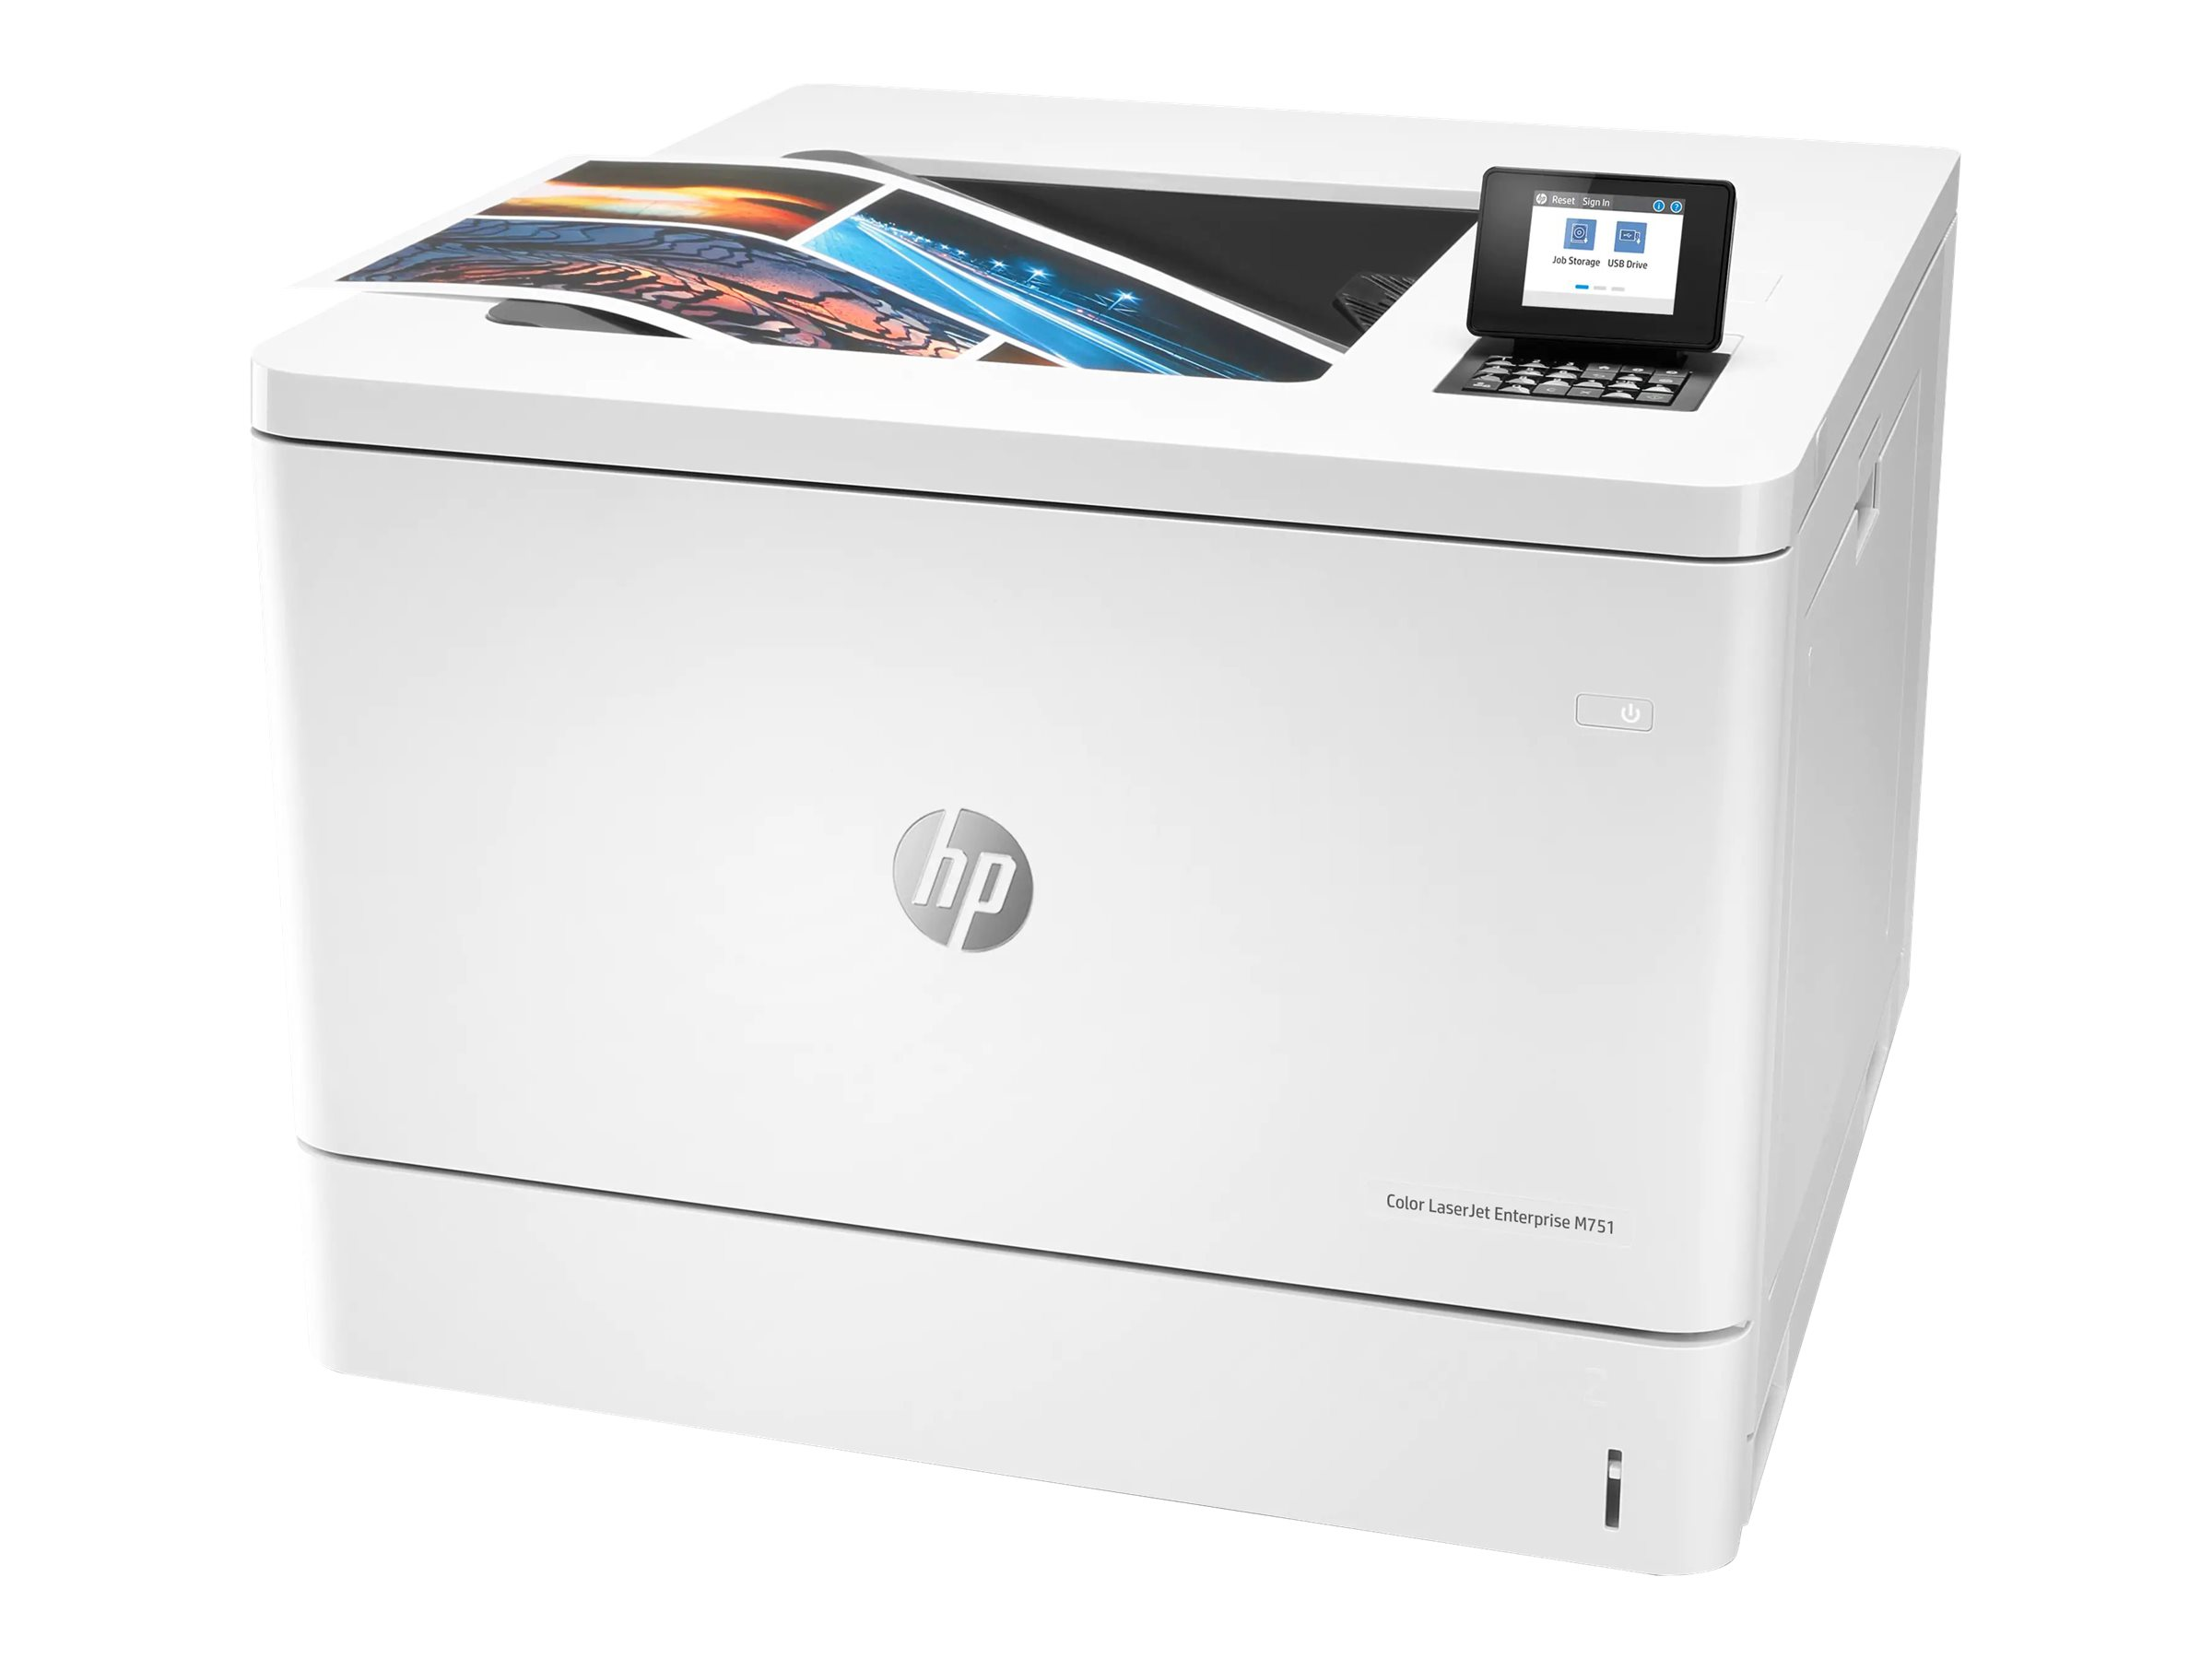 HP Color LaserJet Enterprise M751n - printer - color - laser